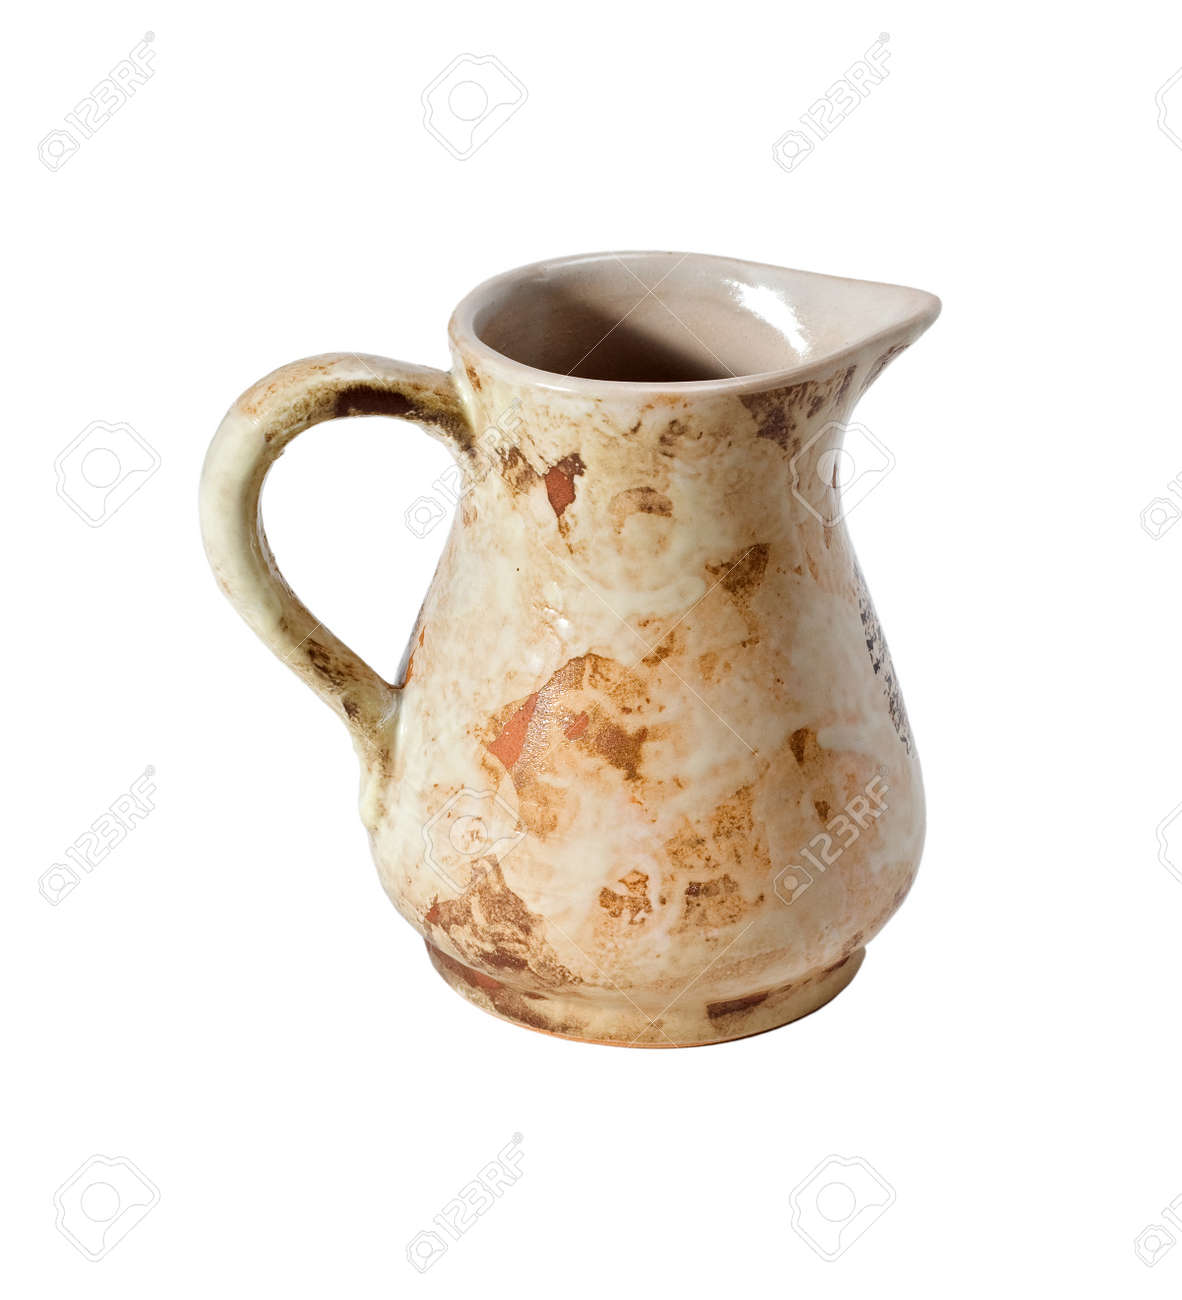 Decorative Jugs And Vases Decorative Clay Or Ceramic Jug Or Jar Or Ewer Or Vase Isolated